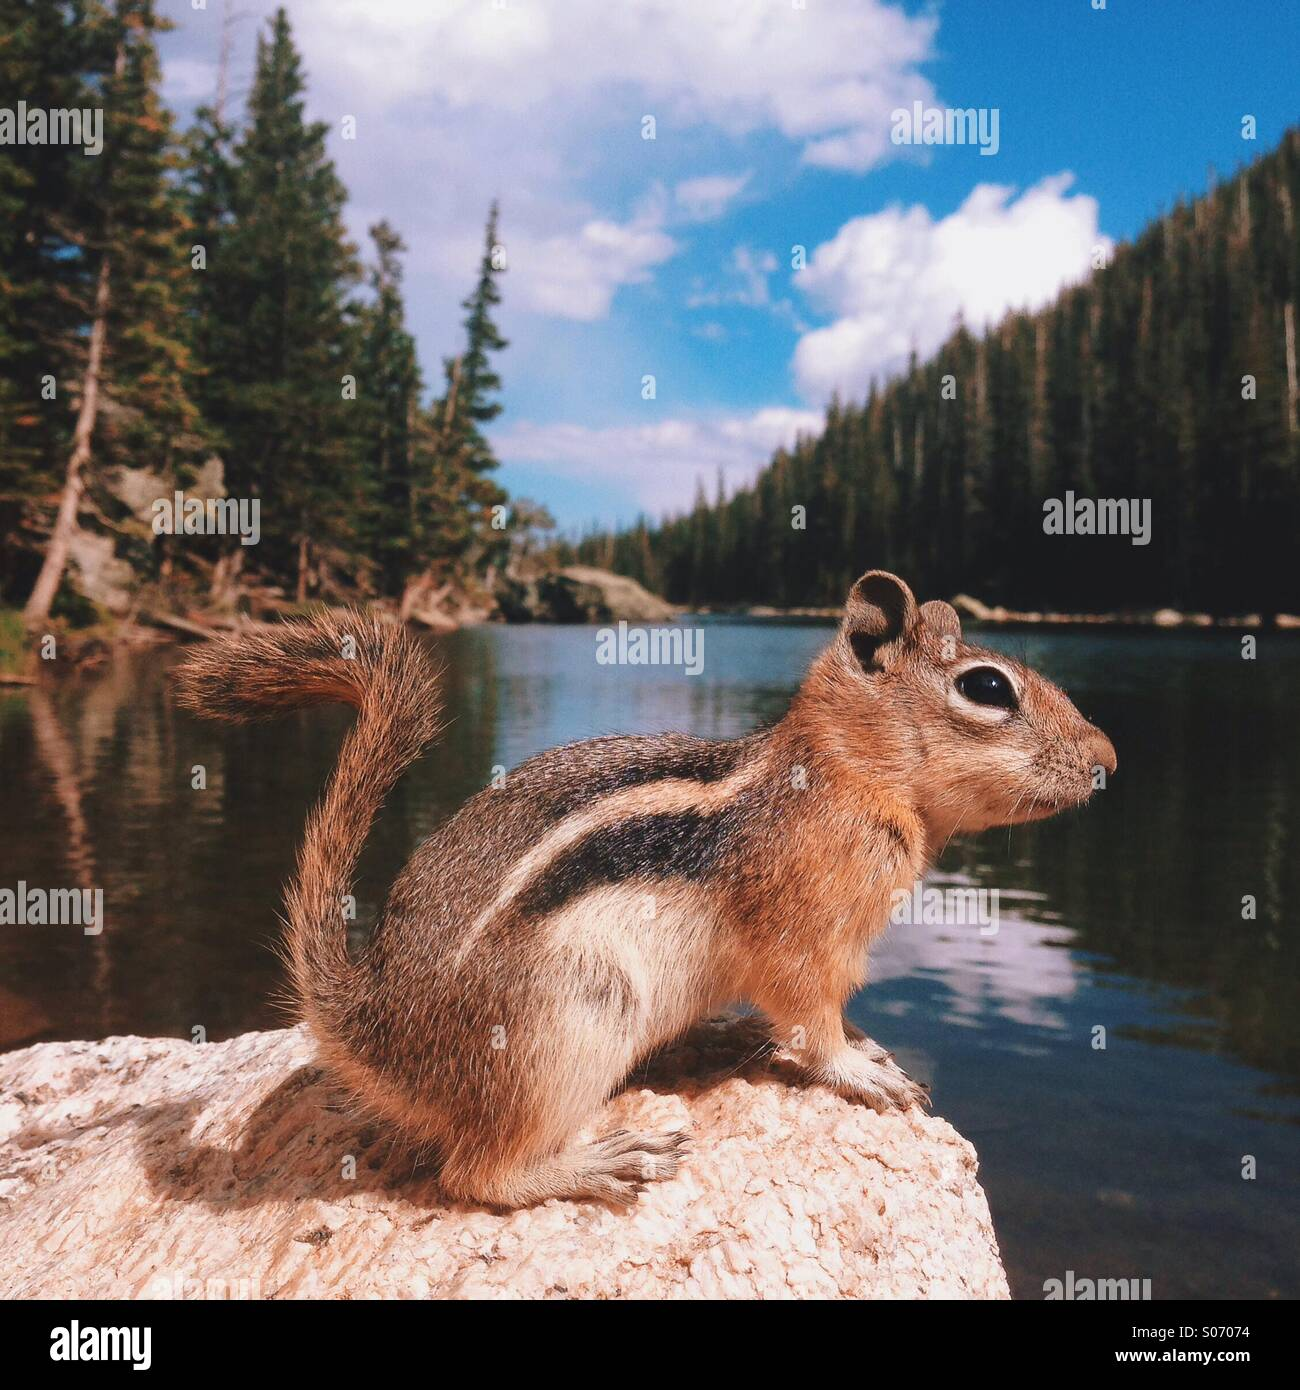 Mountain Lake Chipmunk - Stock Image